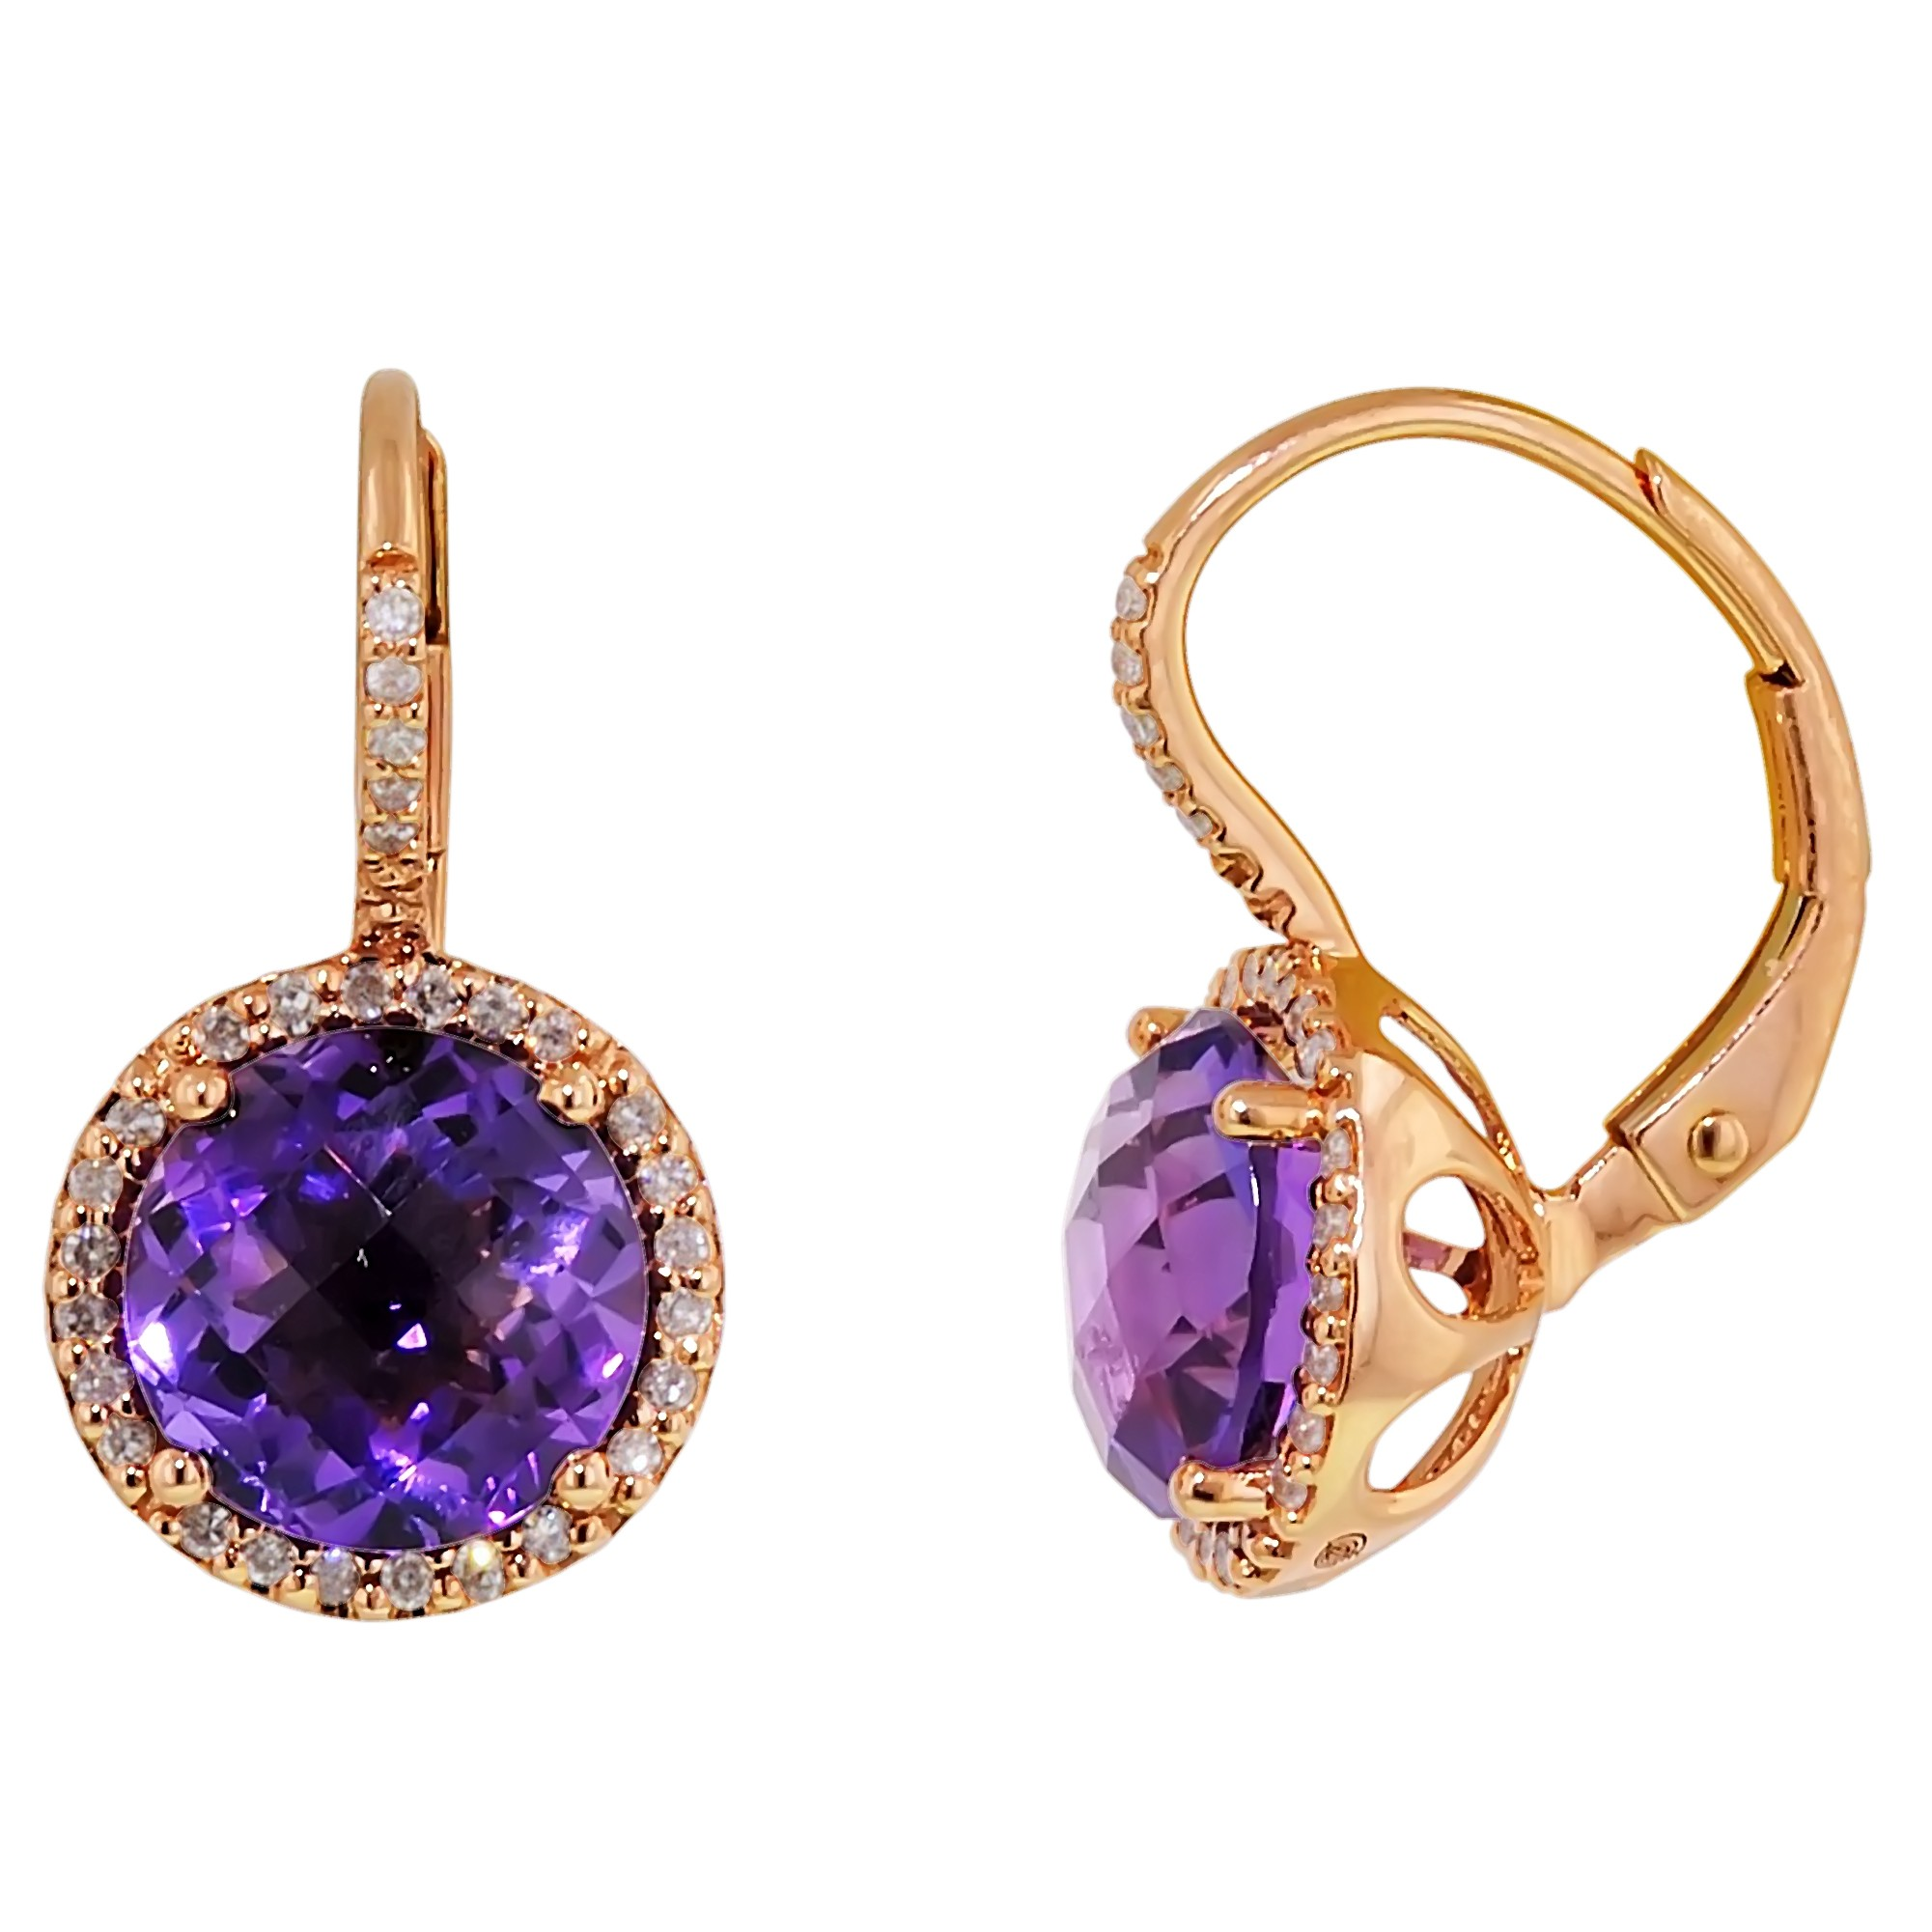 dabakarov amethyst earrings in 14kt rose gold with diamonds(1/7ct tw) PFDEARH